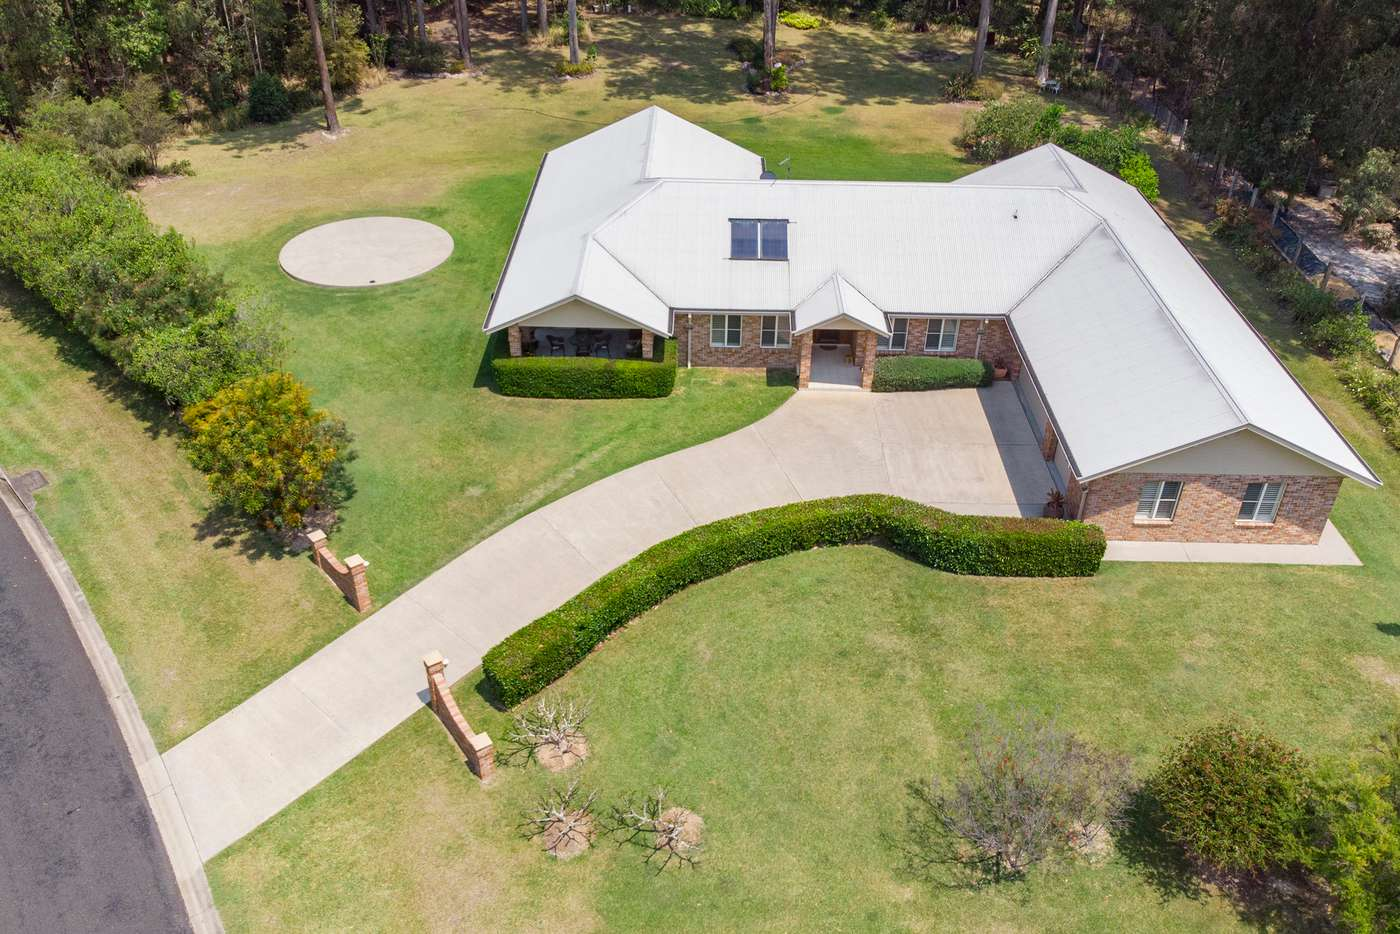 Main view of Homely house listing, 222 Heritage Drive, Moonee Beach NSW 2450